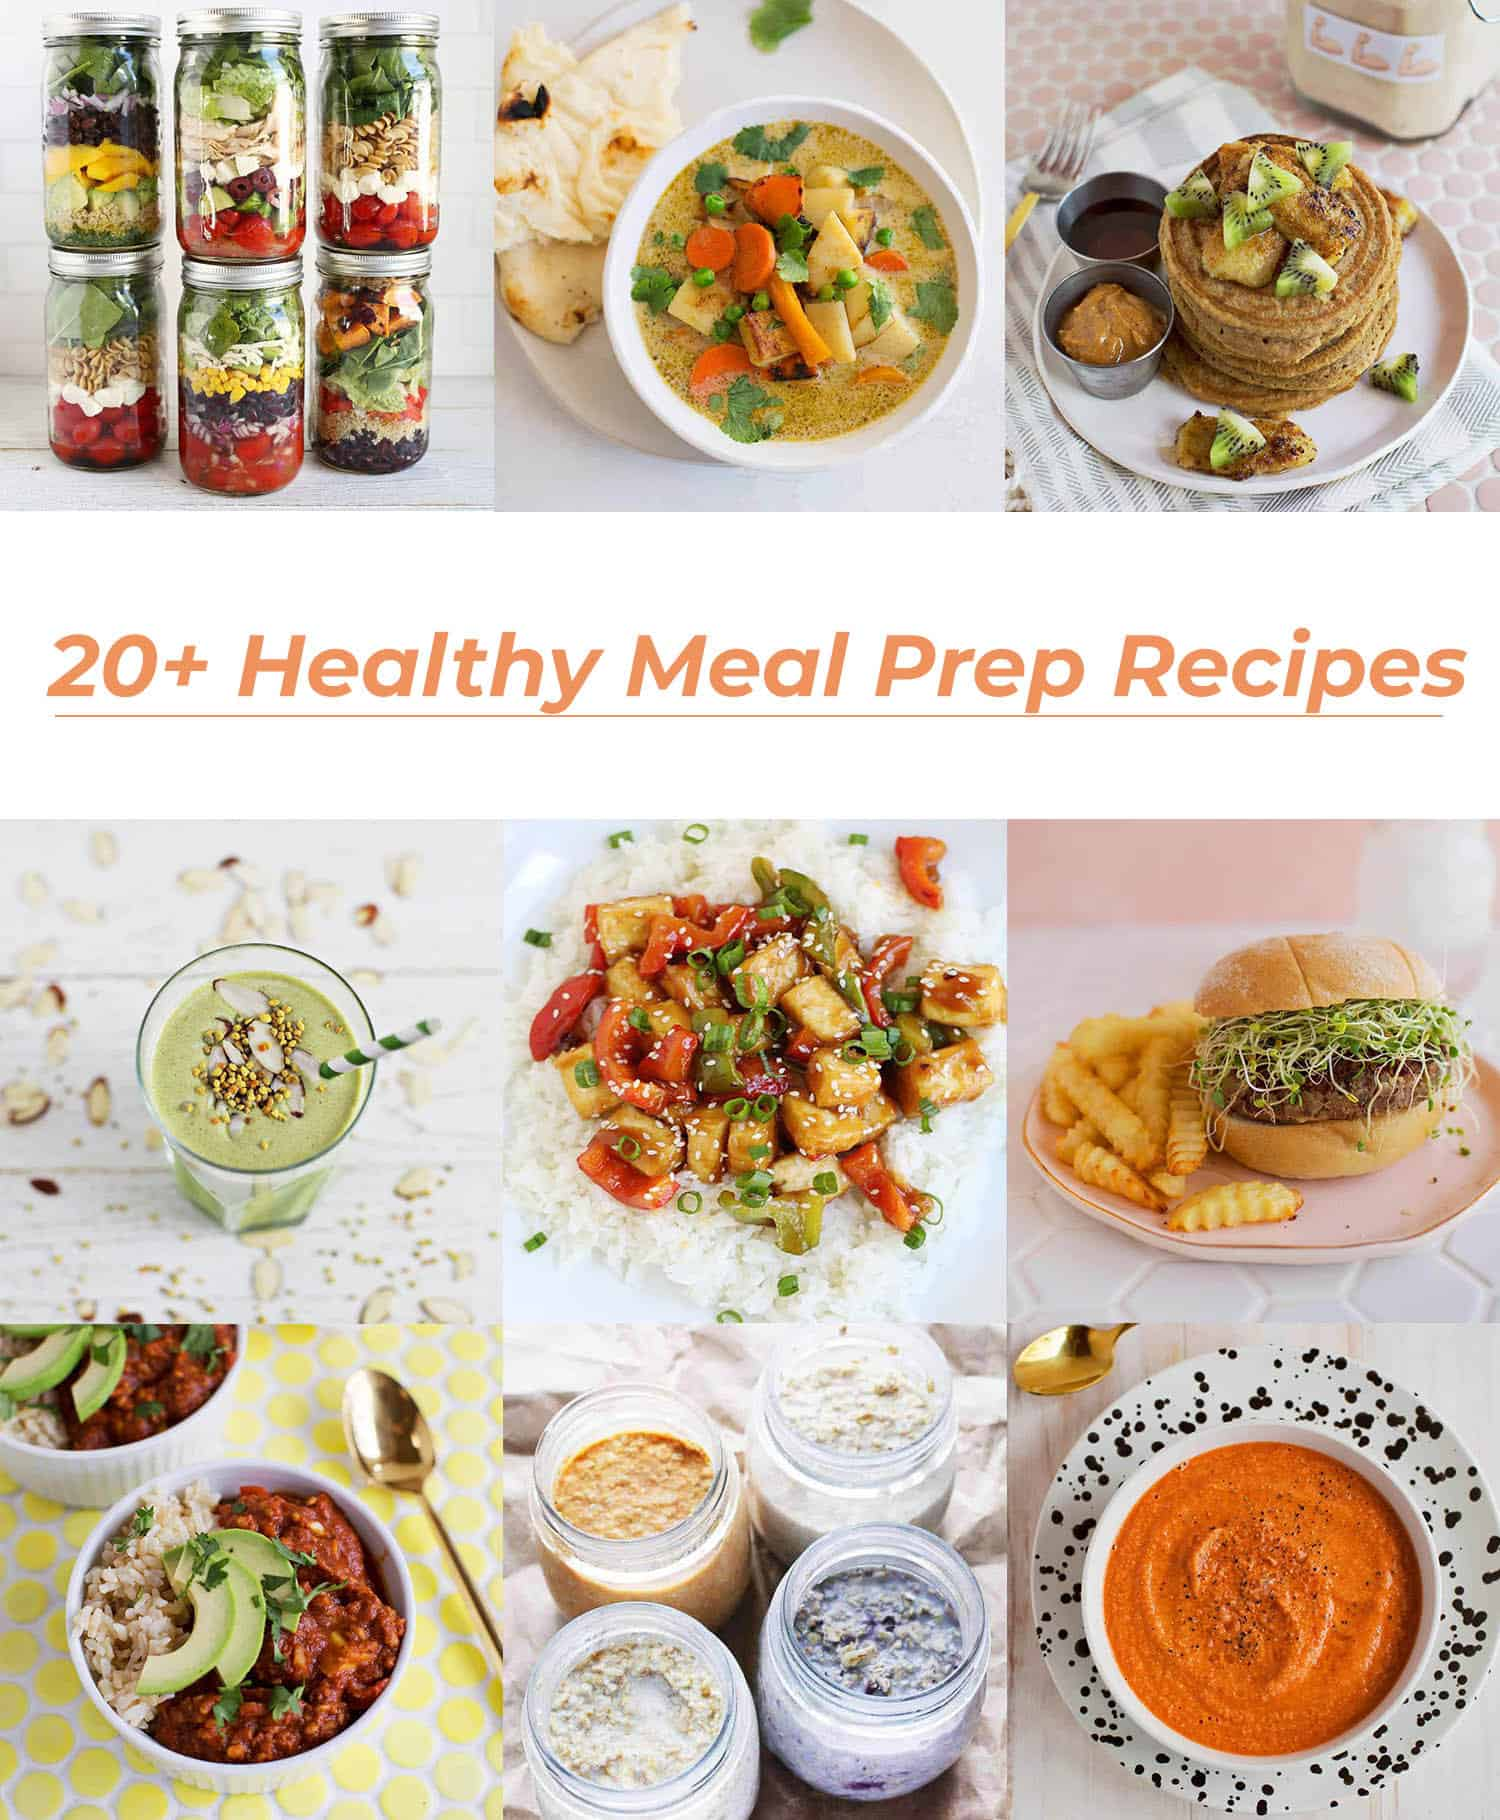 20+ Healthy Meal Prep Recipes